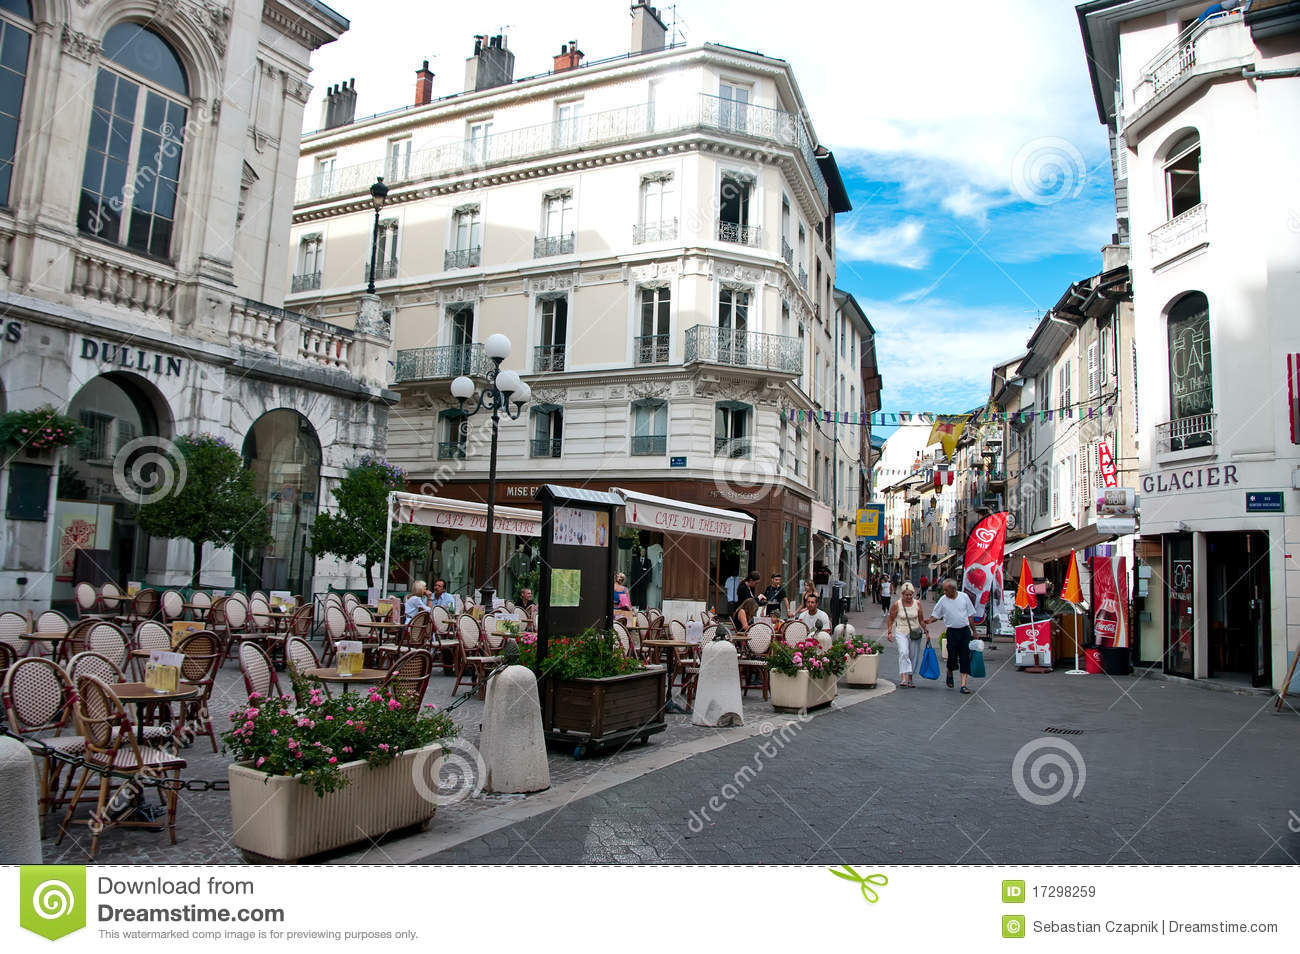 Chambery France  city pictures gallery : chambery france old town centre architecture mr no pr no 2 1761 3